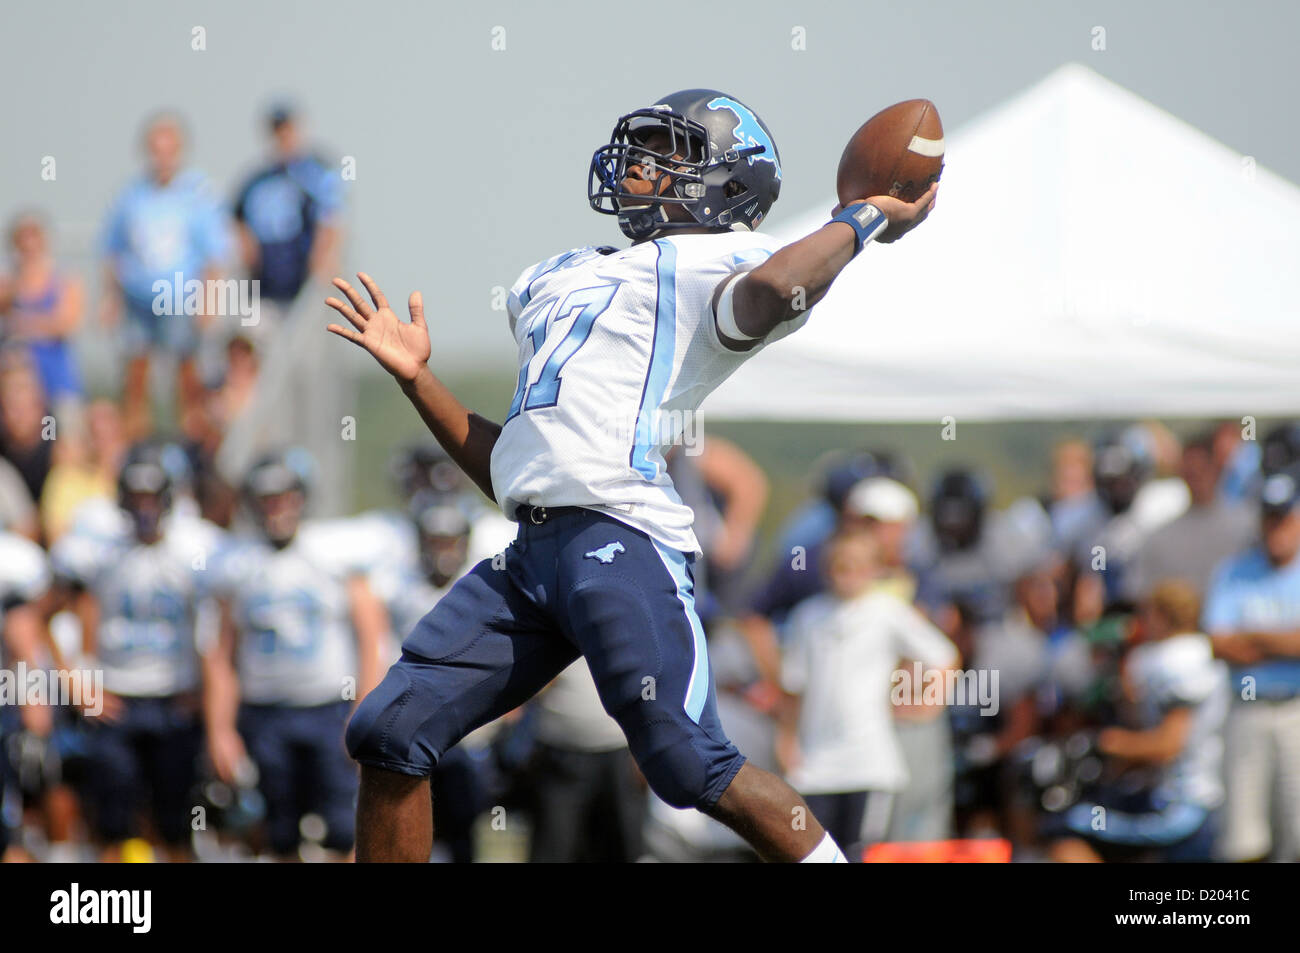 Football quarterback launching a long pass down field. USA. - Stock Image